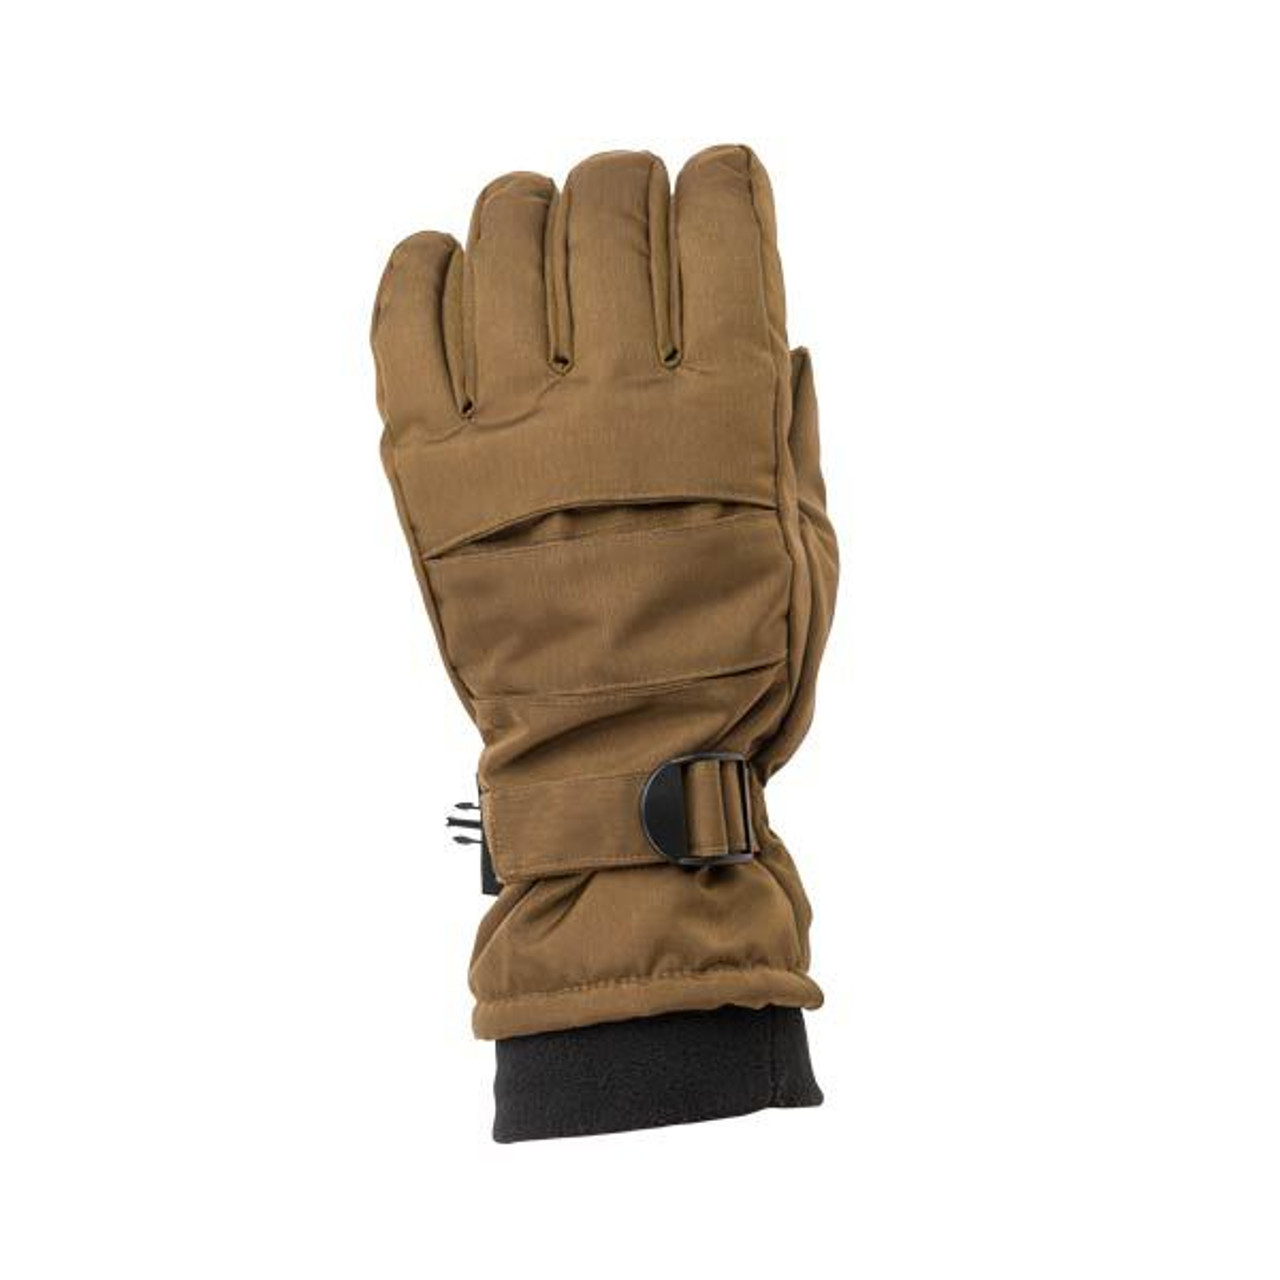 Dan's Hunting Gear |DHG201/202 | Briarproof Gloves | Windwalker Outdoors | Montana U.S.A